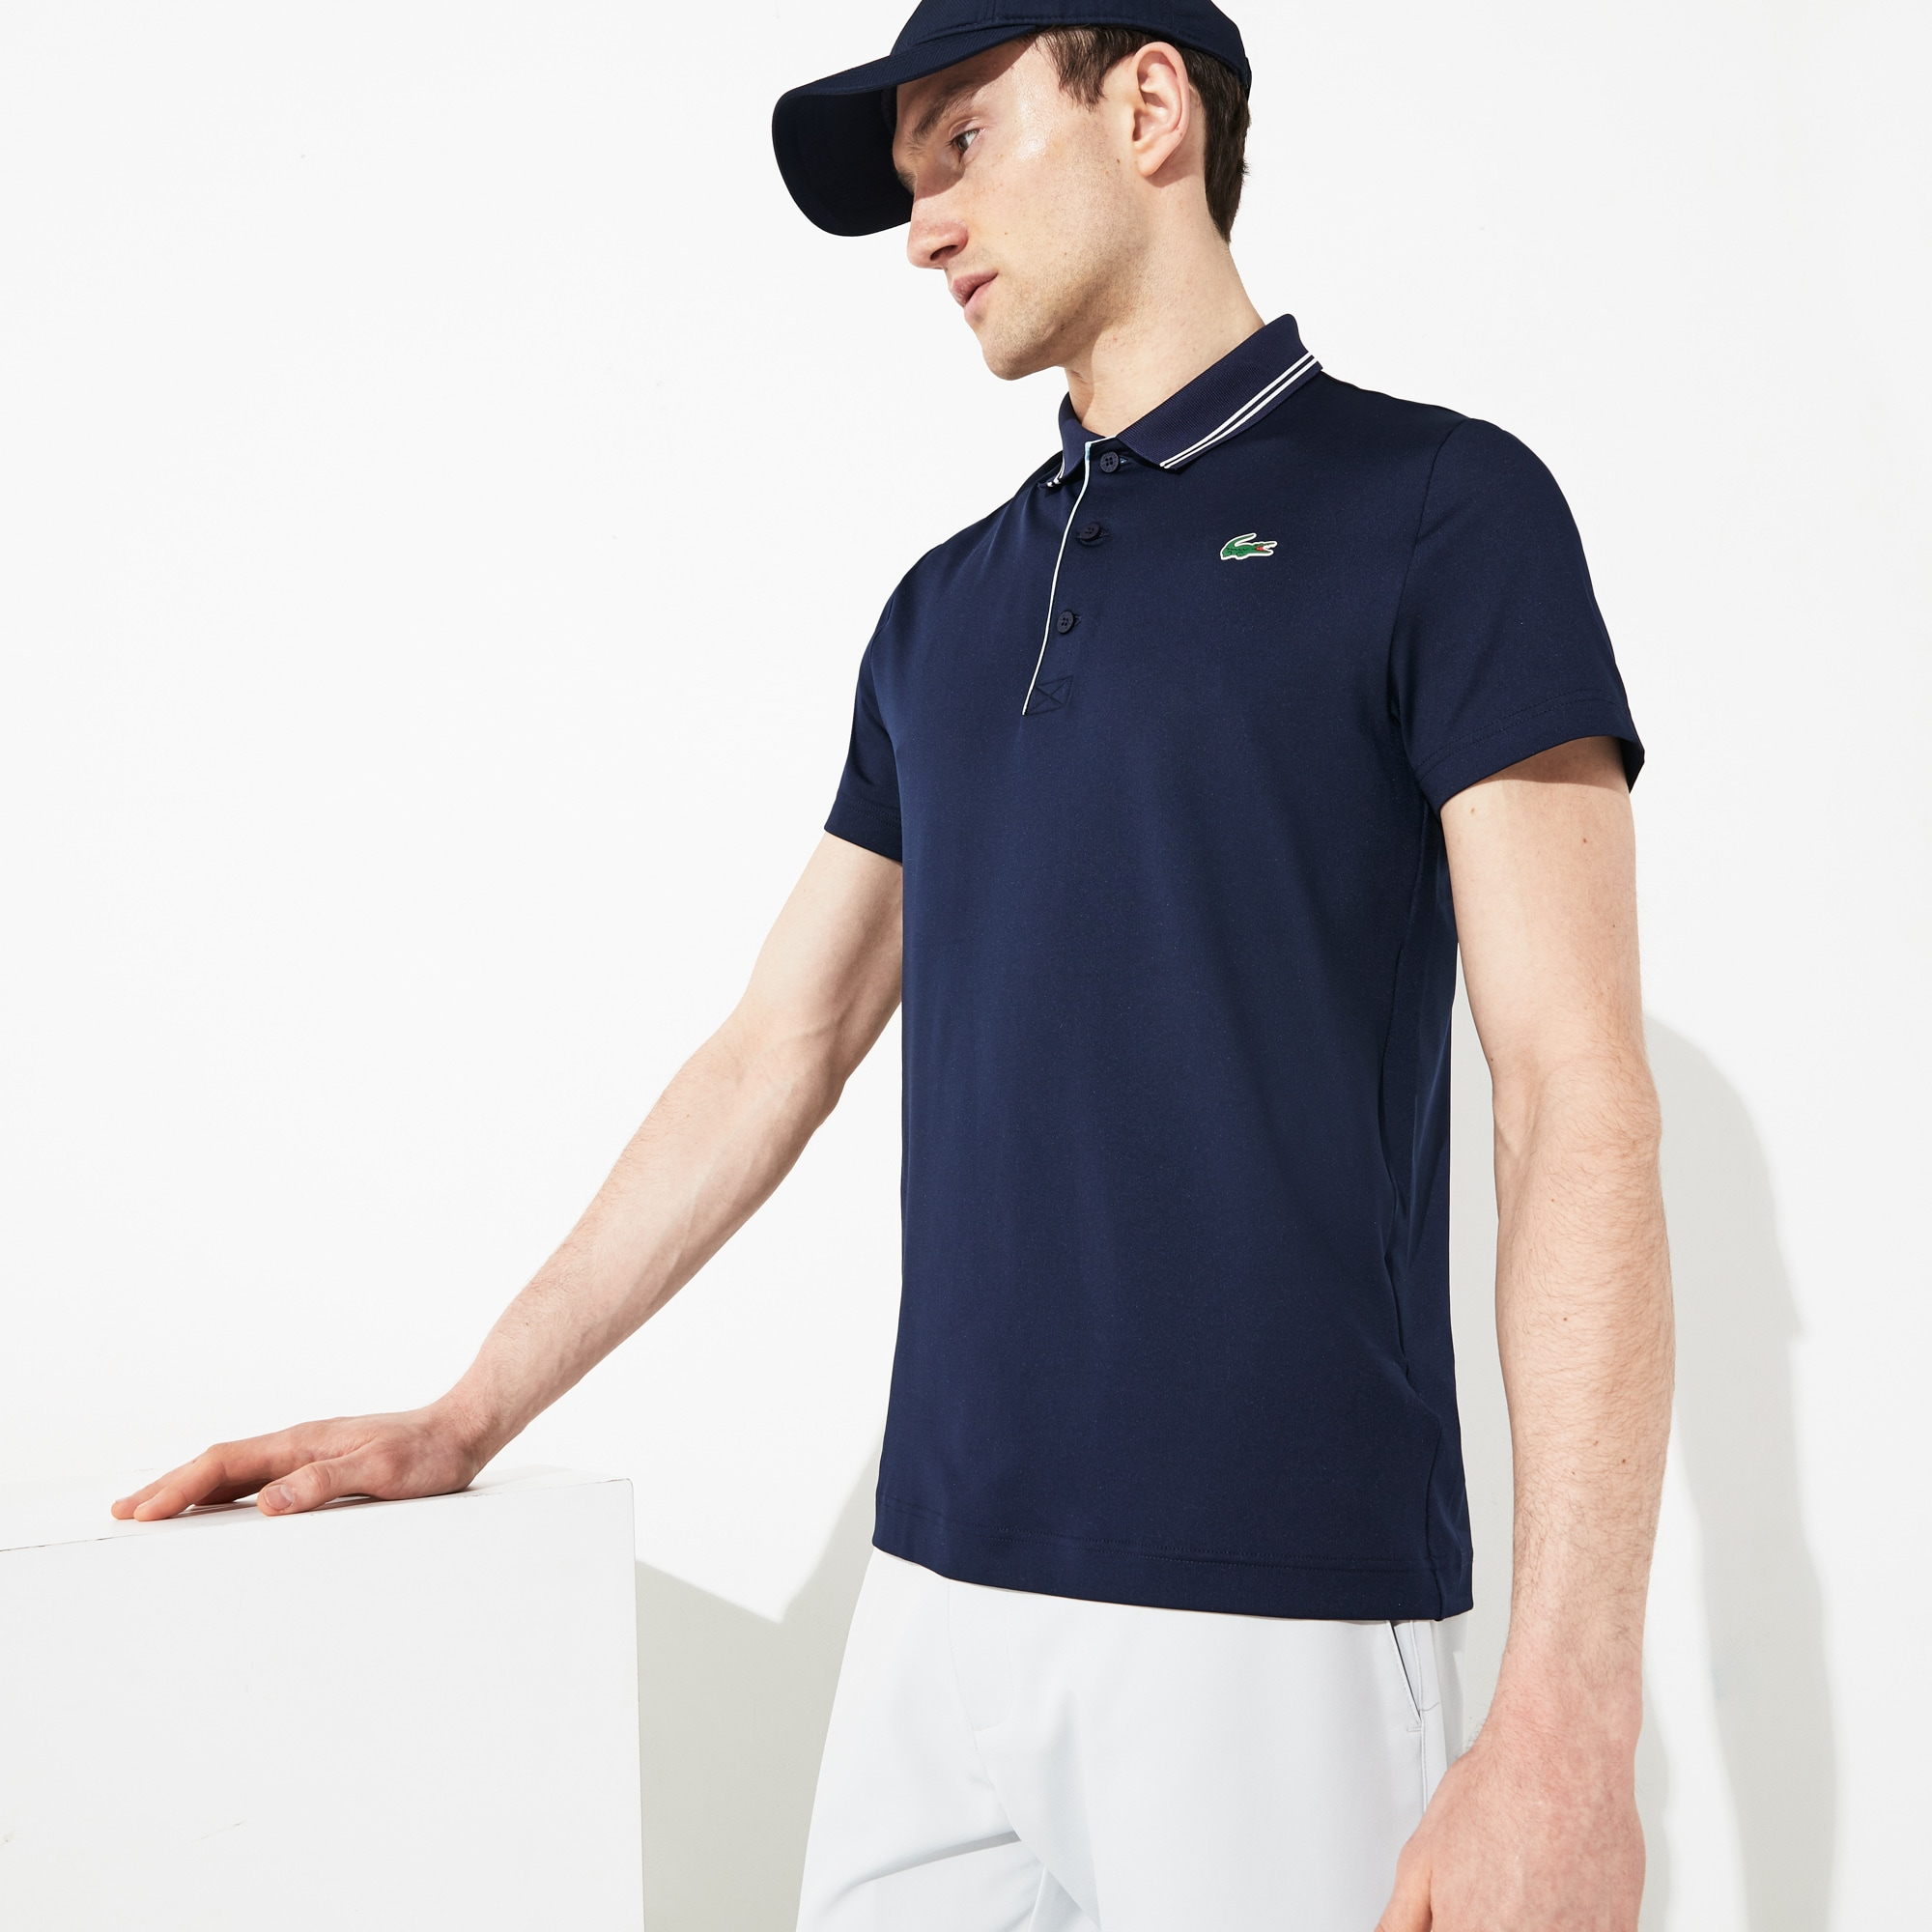 0a14e195f6 Men's SPORT Lettering Stretch Technical Jersey Golf Polo Shirt